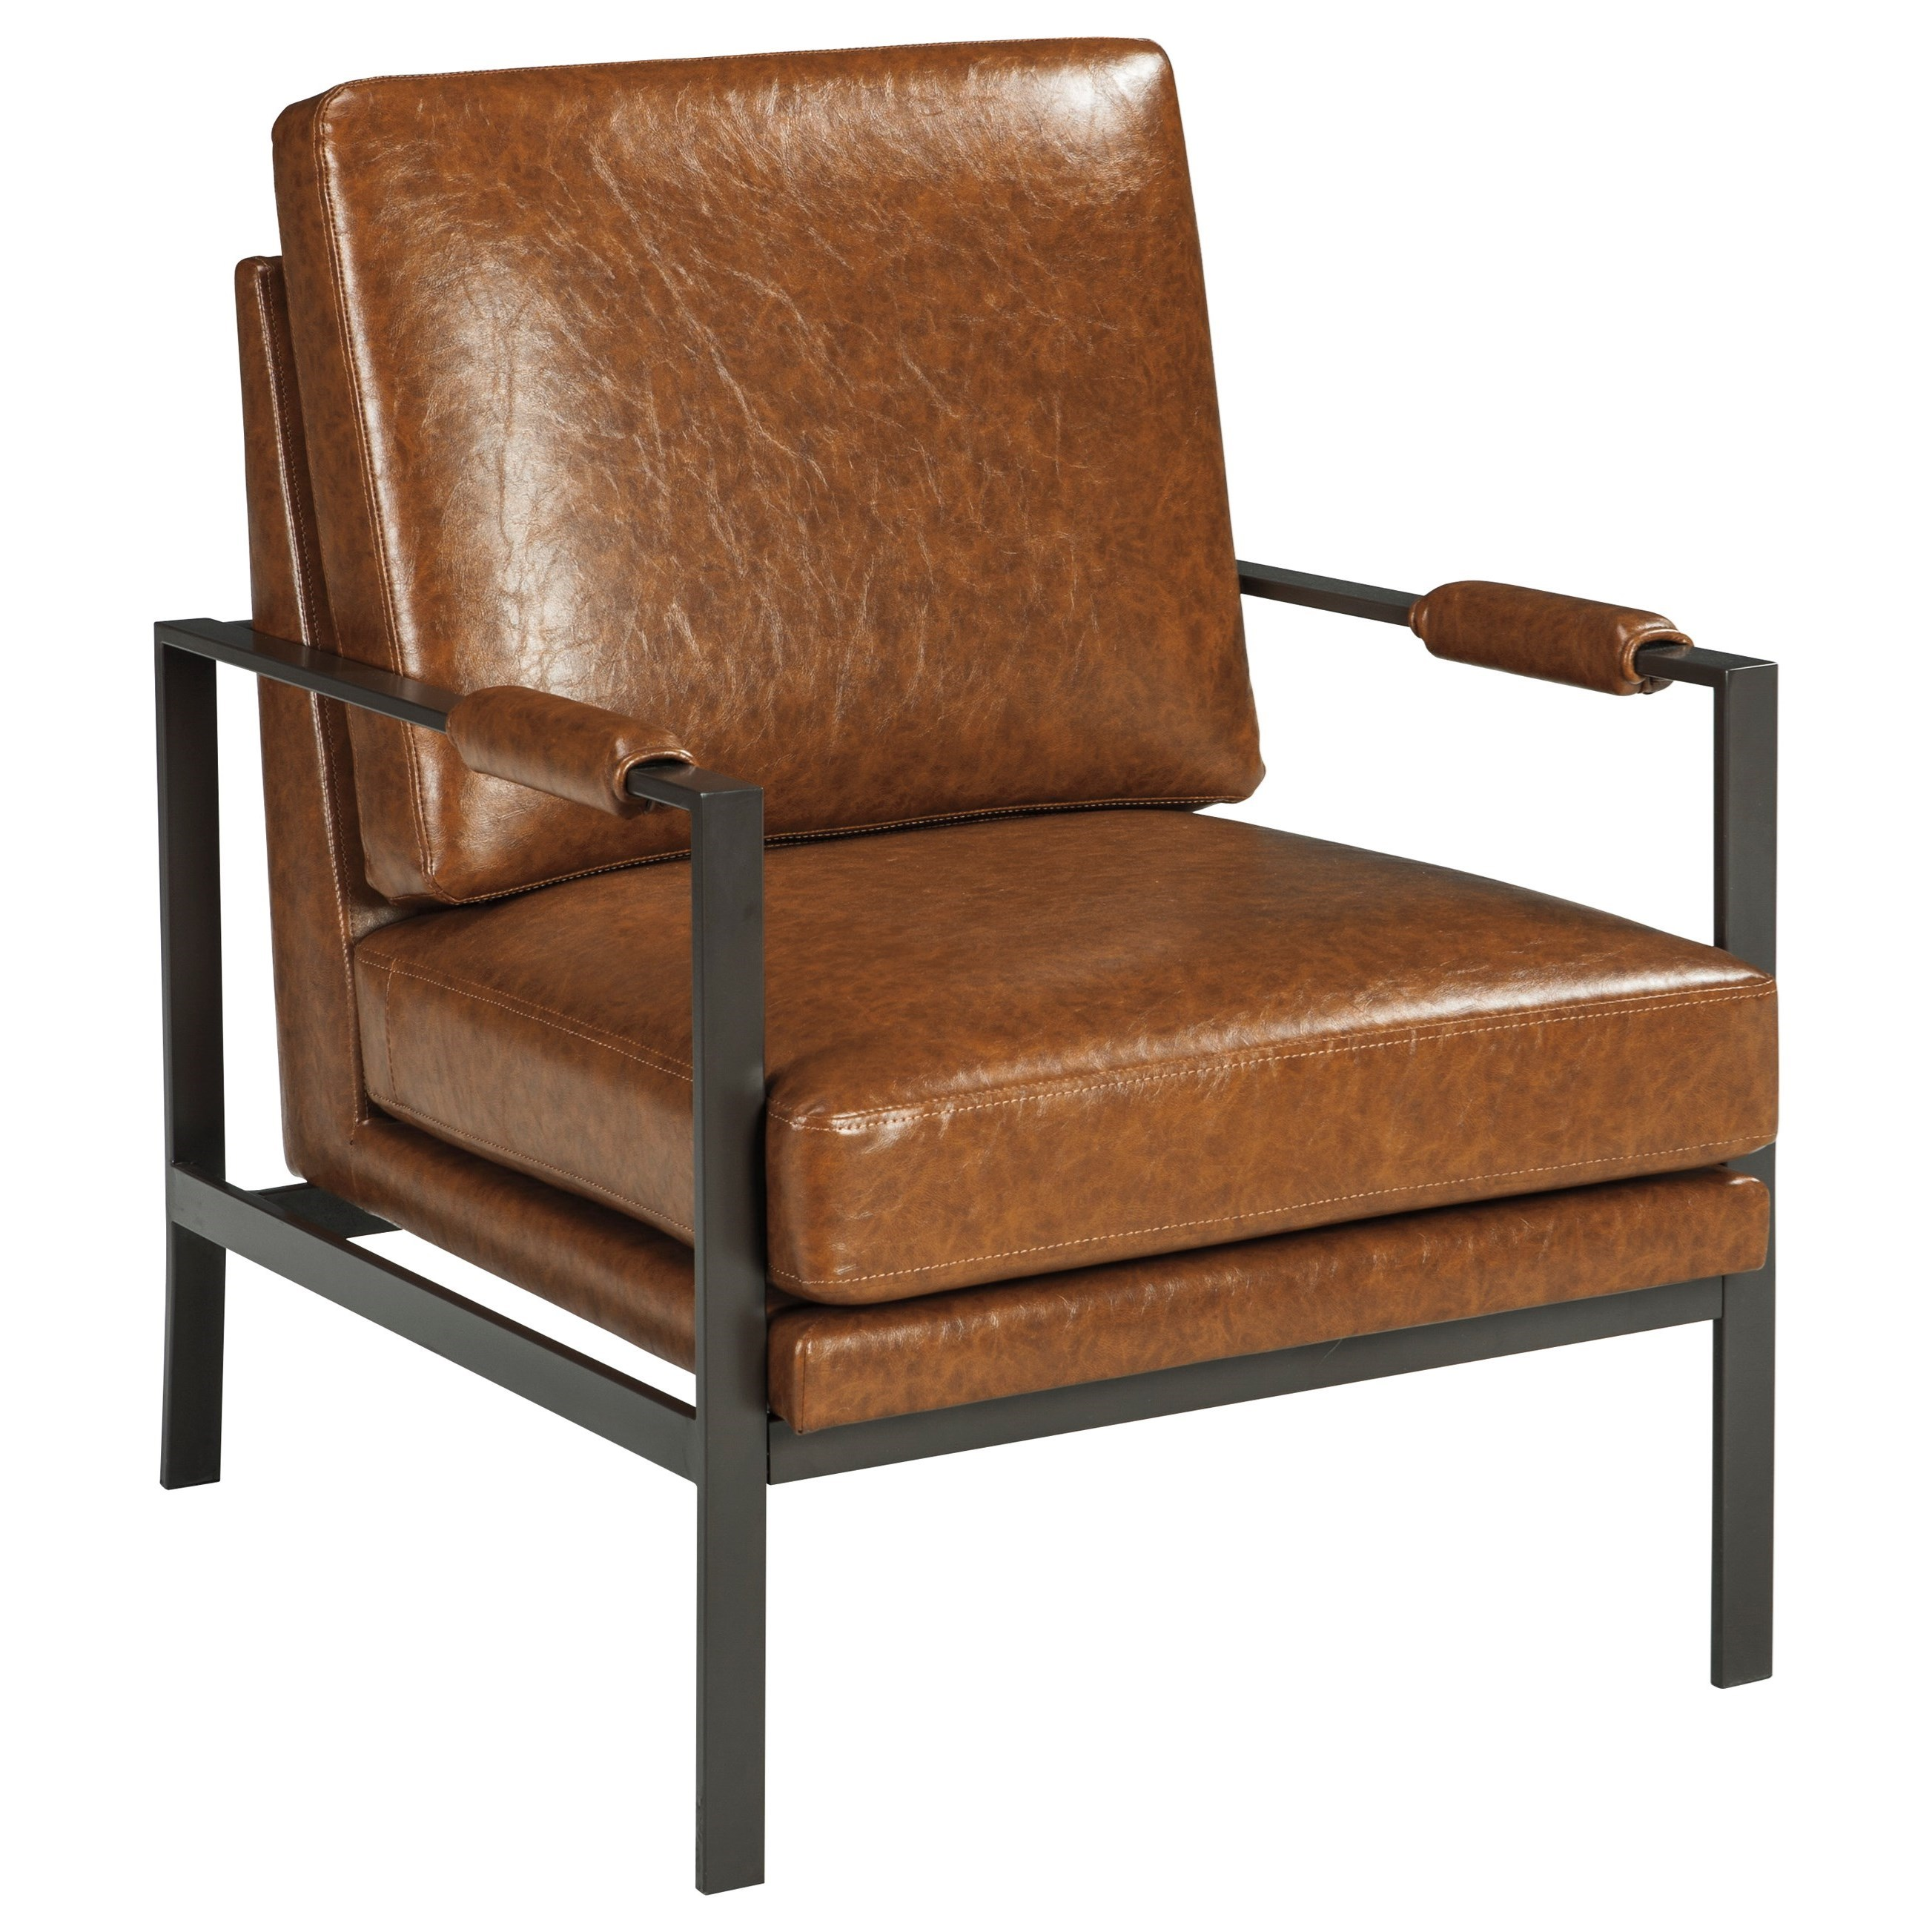 Signature Design by Ashley Peacemaker Accent Chair - Item Number: A3000029